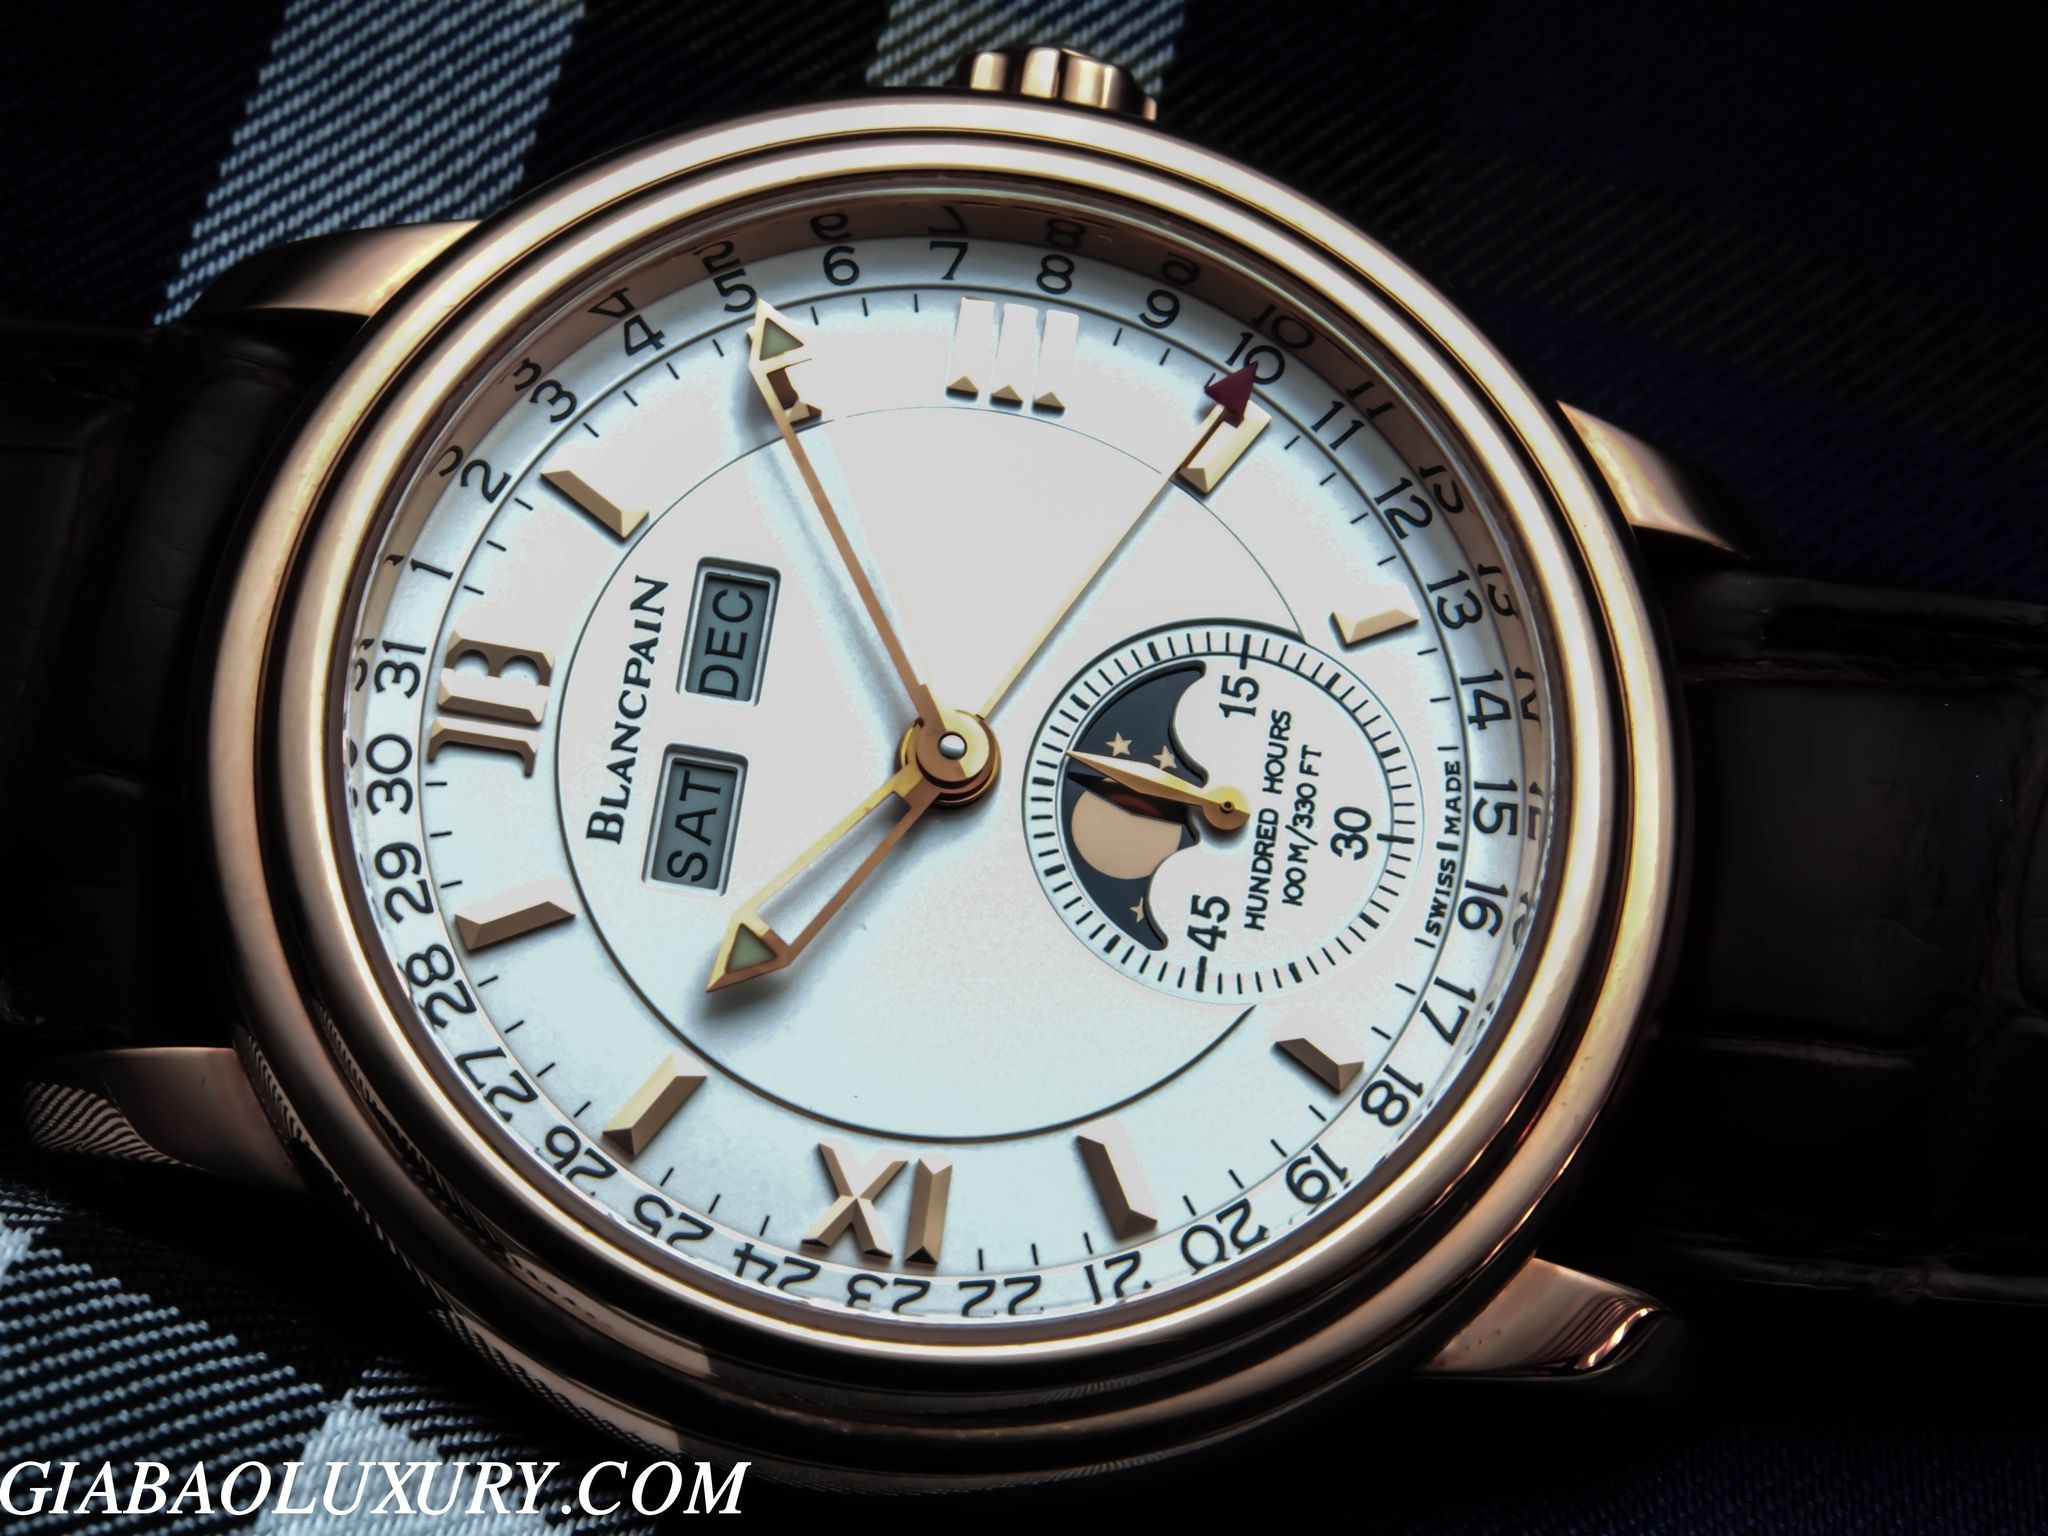 ĐỒNG HỒ BLANCPAIN LEMAN COMPLETE CALENDAR MOONPHASE